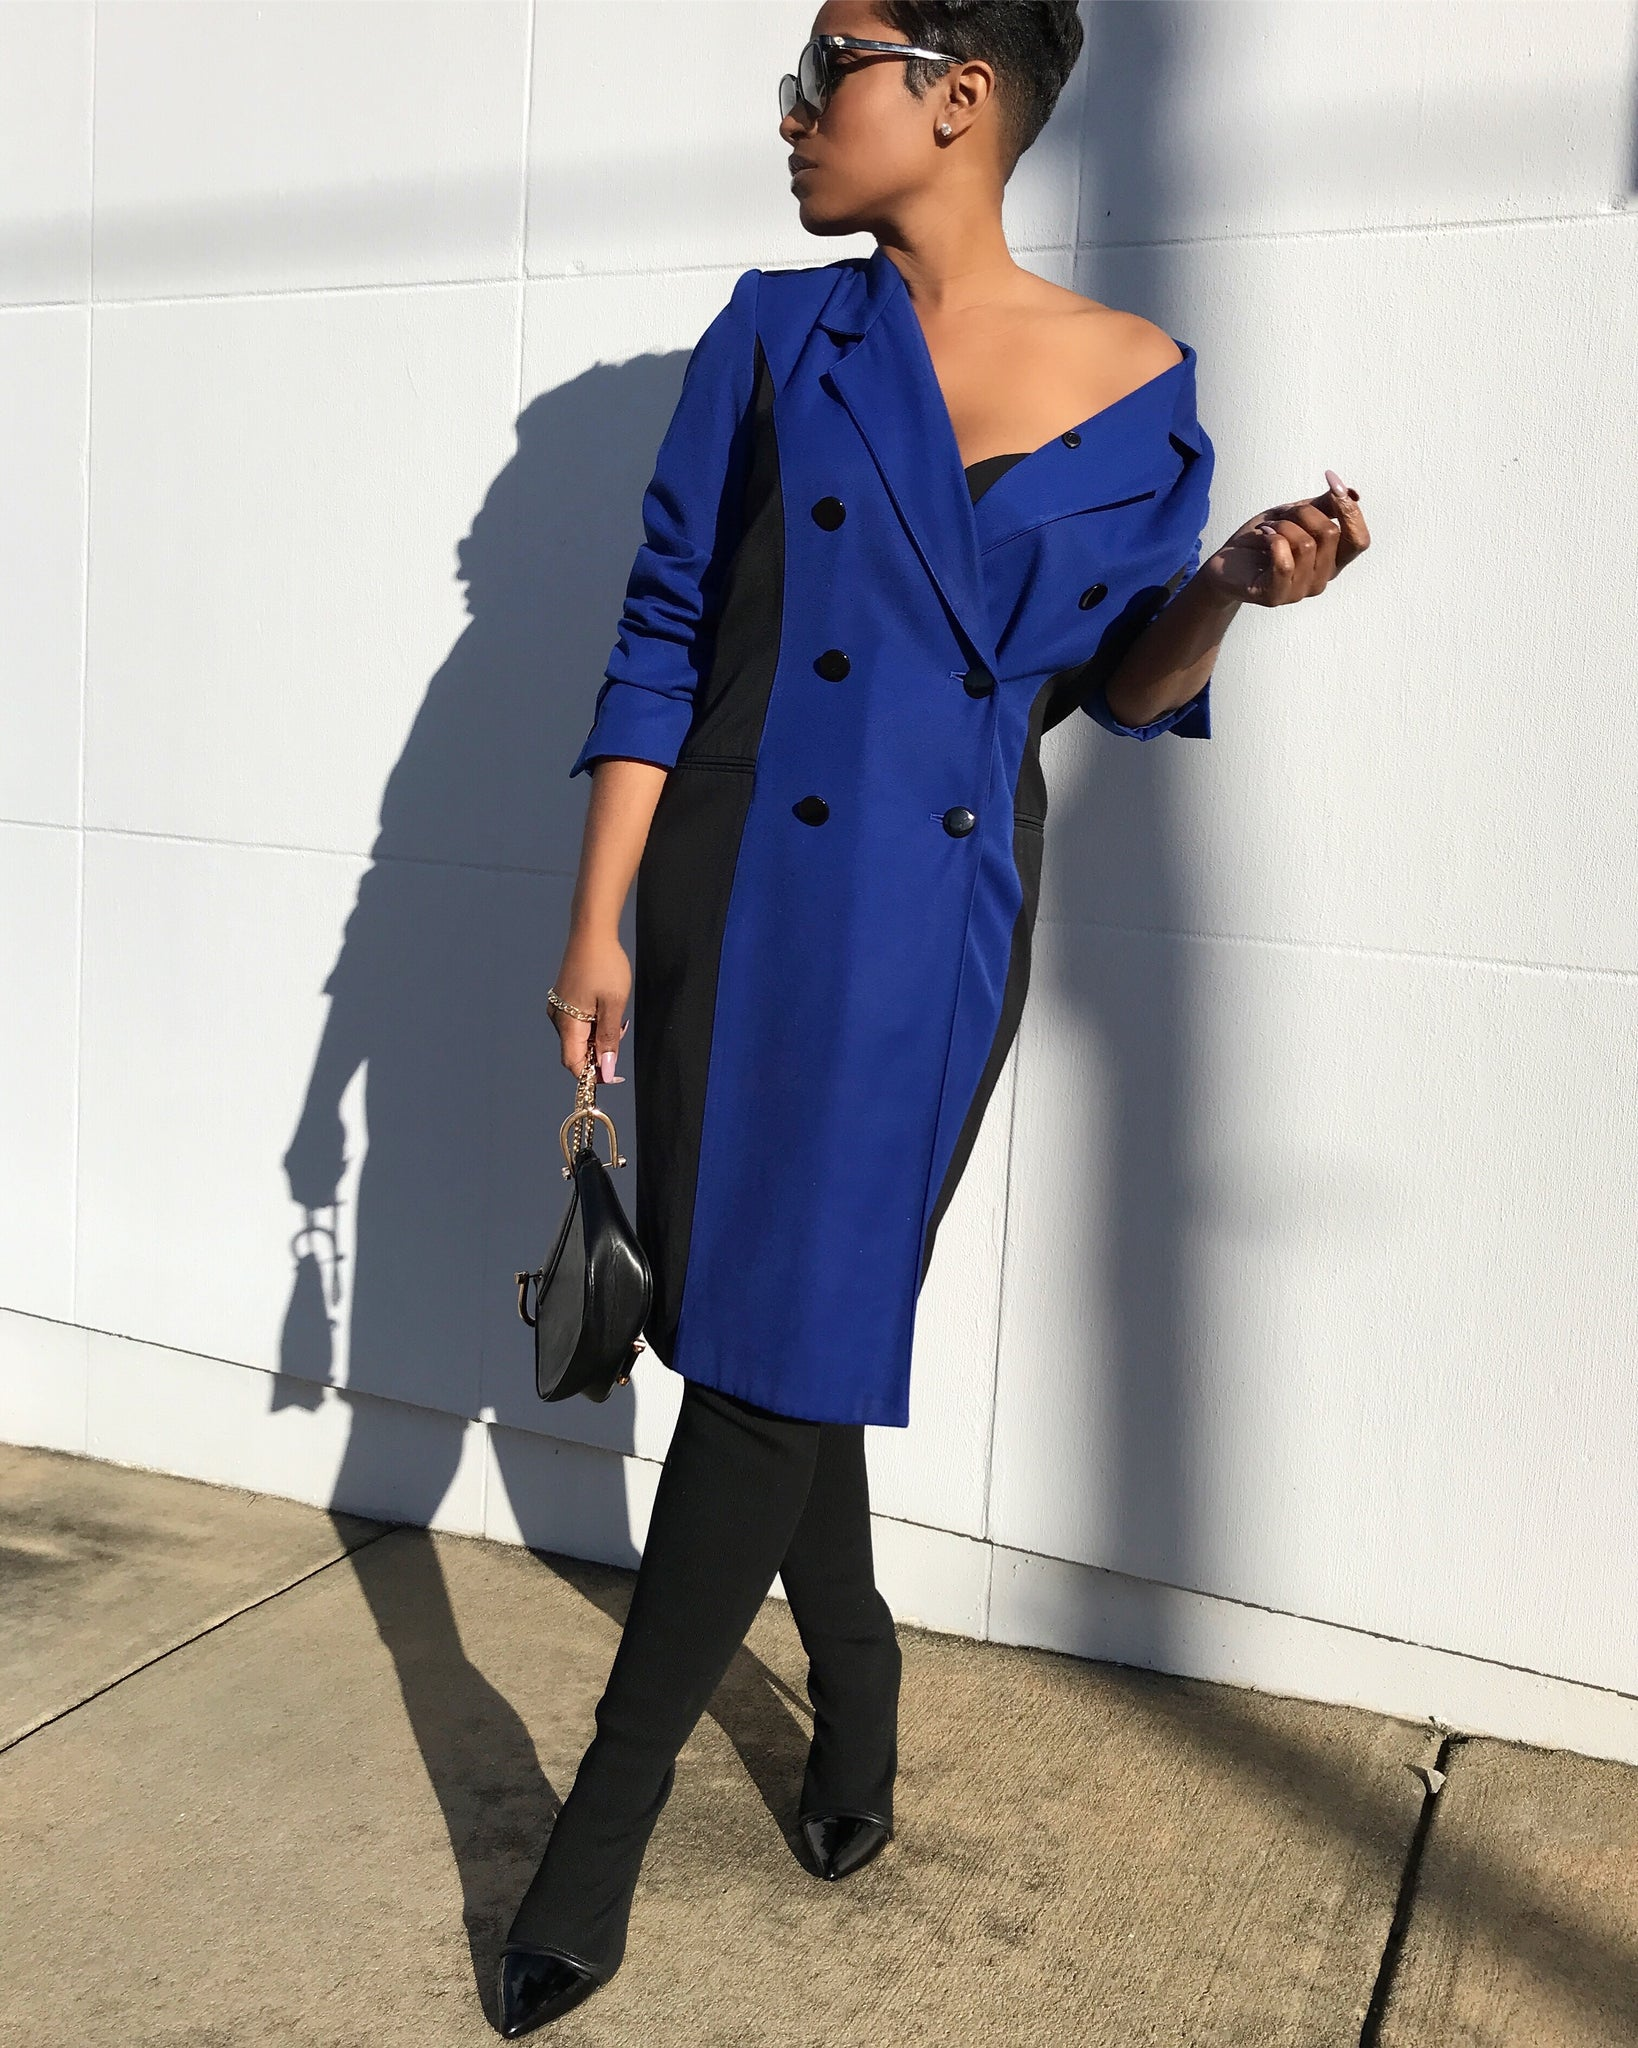 Electric Blue and Black Contrasting Double-Breasted Blazer Dress